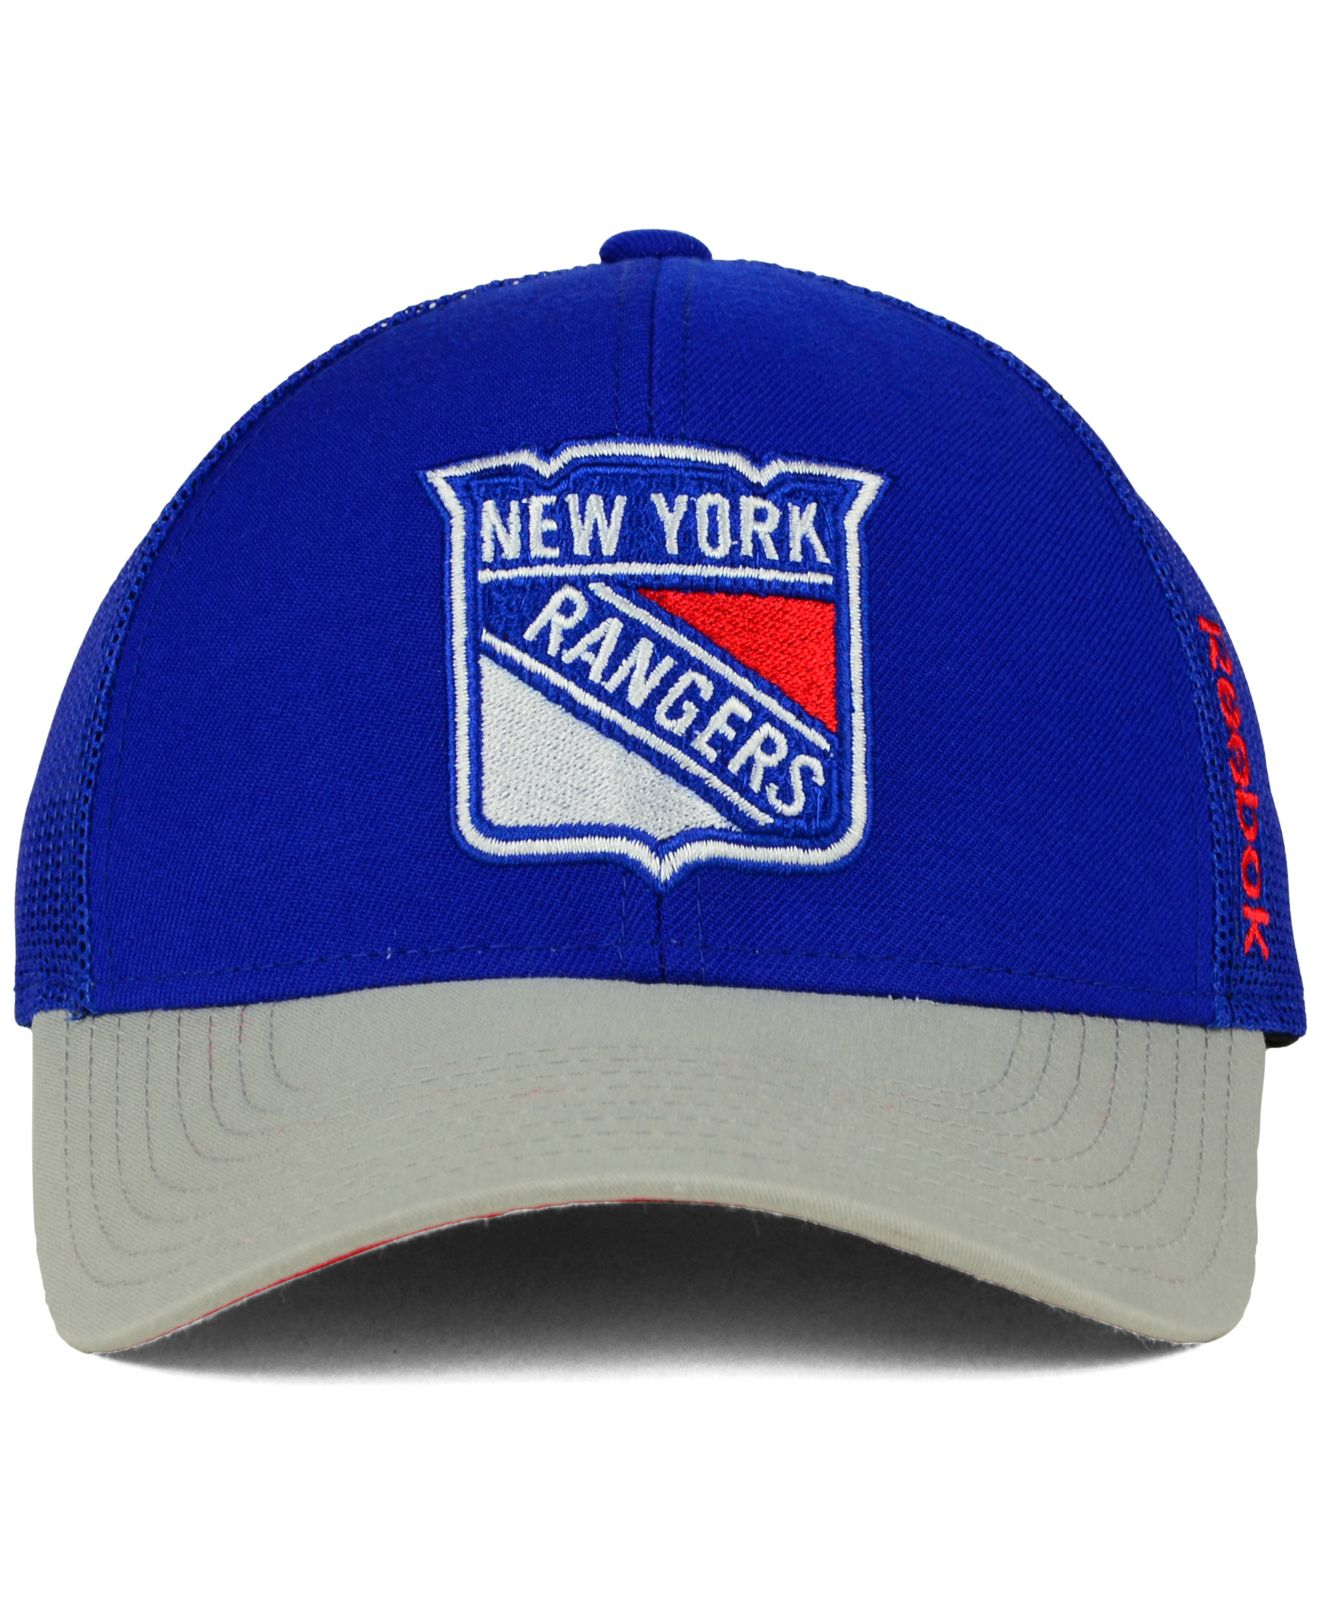 uk availability 7a1a7 904f0 ... discount code for lyst reebok new york rangers tnt adjustable cap in  blue for men 66dac